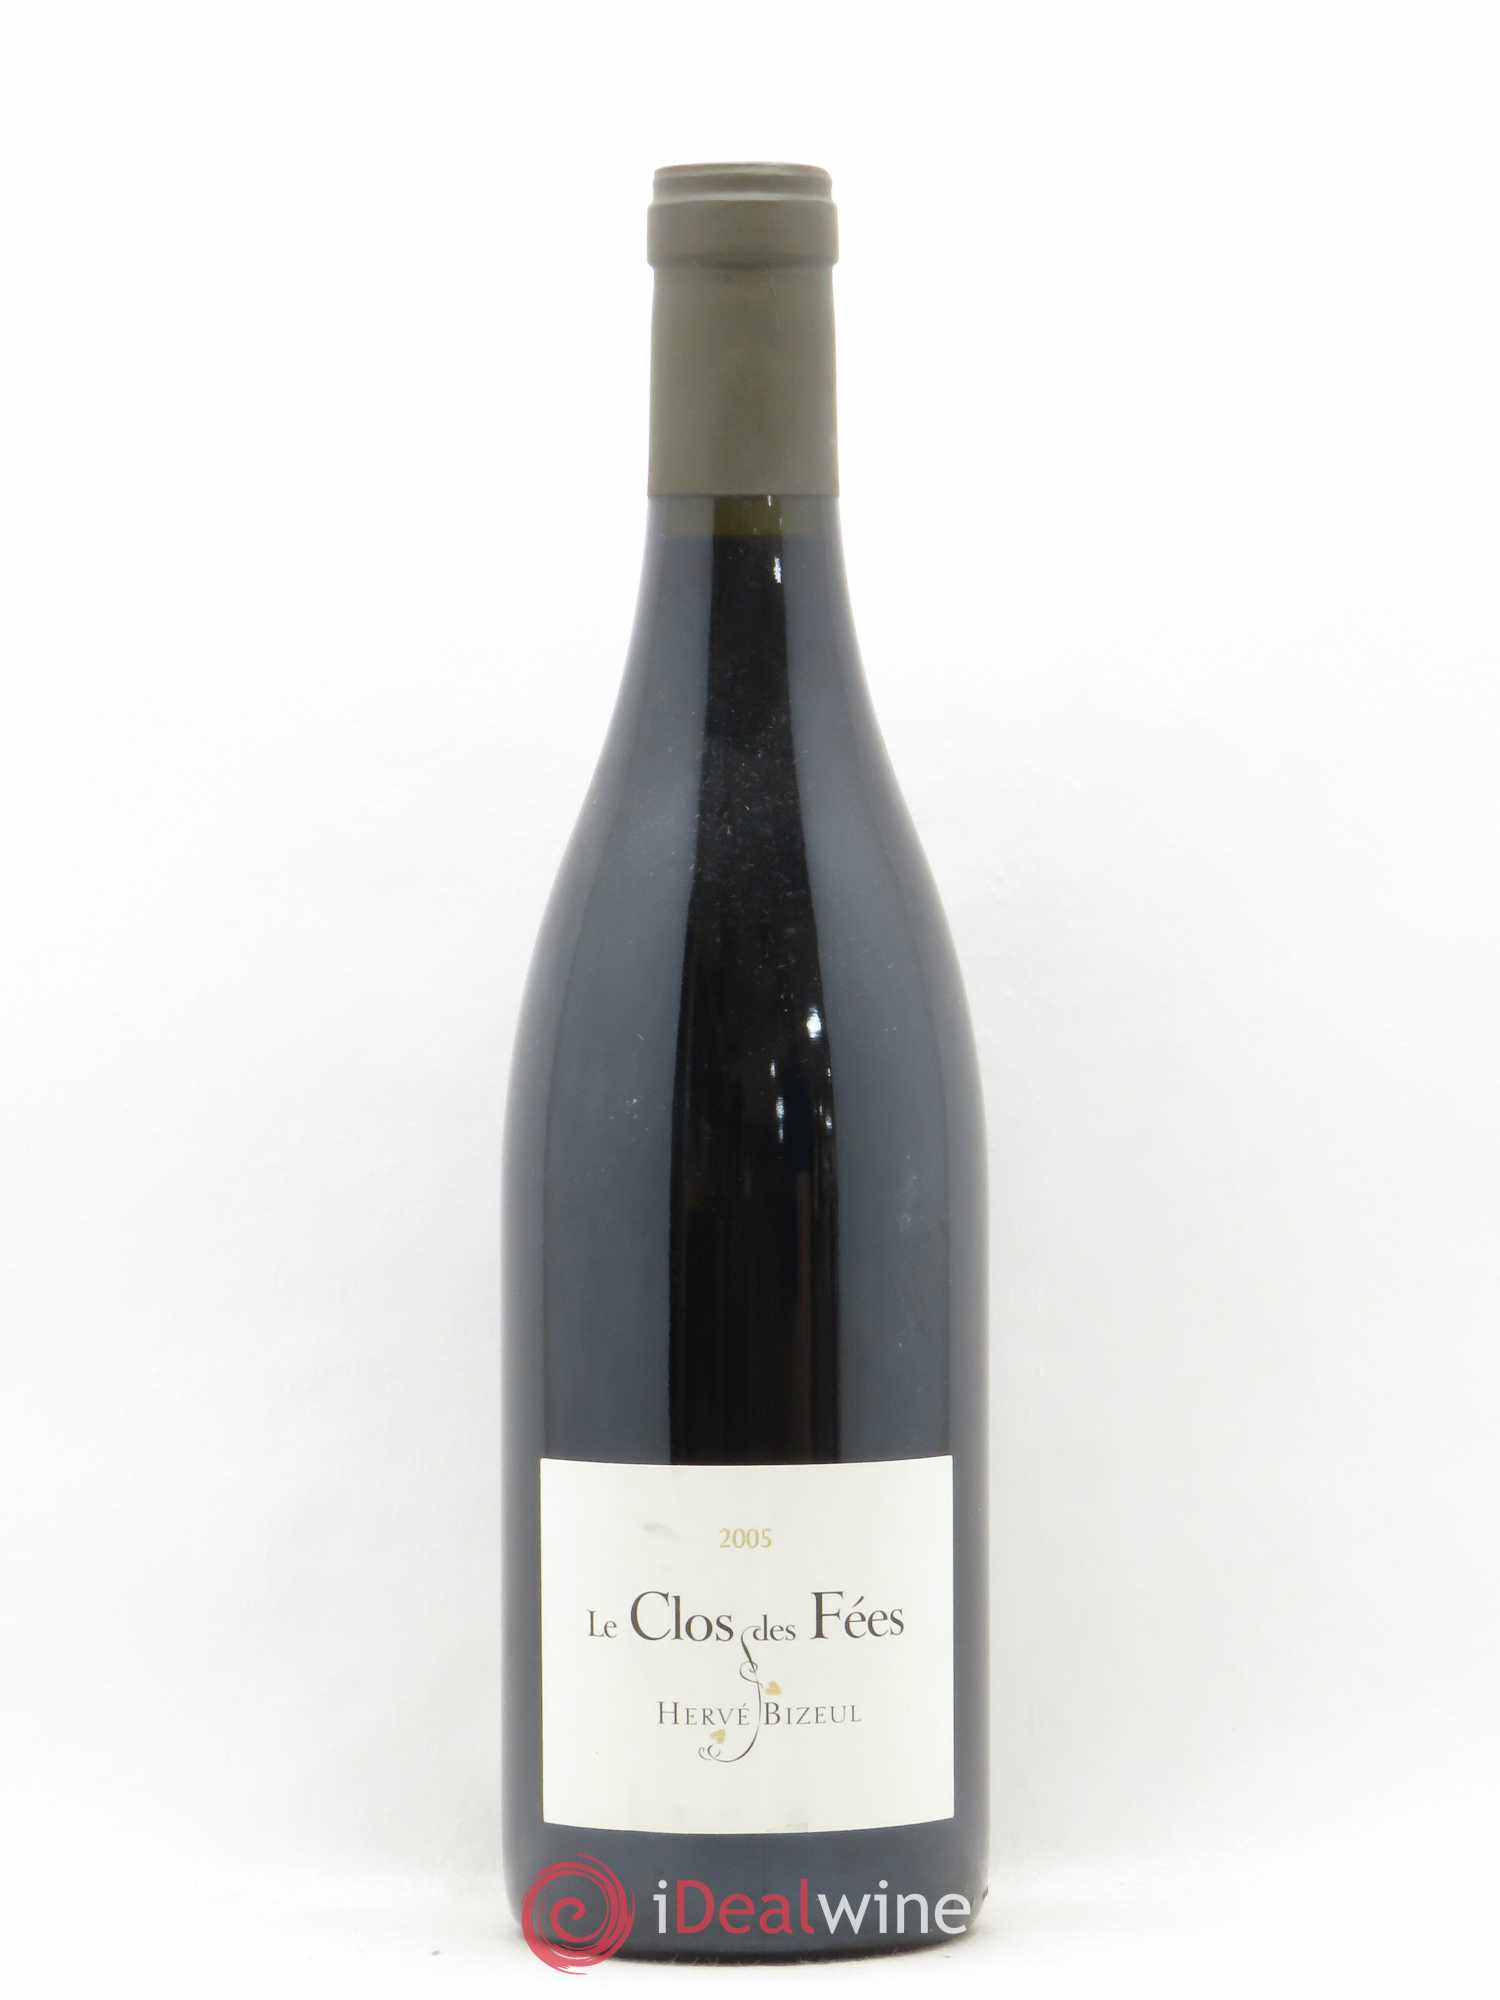 Côtes du Roussillon Clos des Fées Hervé Bizeul  2005 - Lot of 1 Bottle